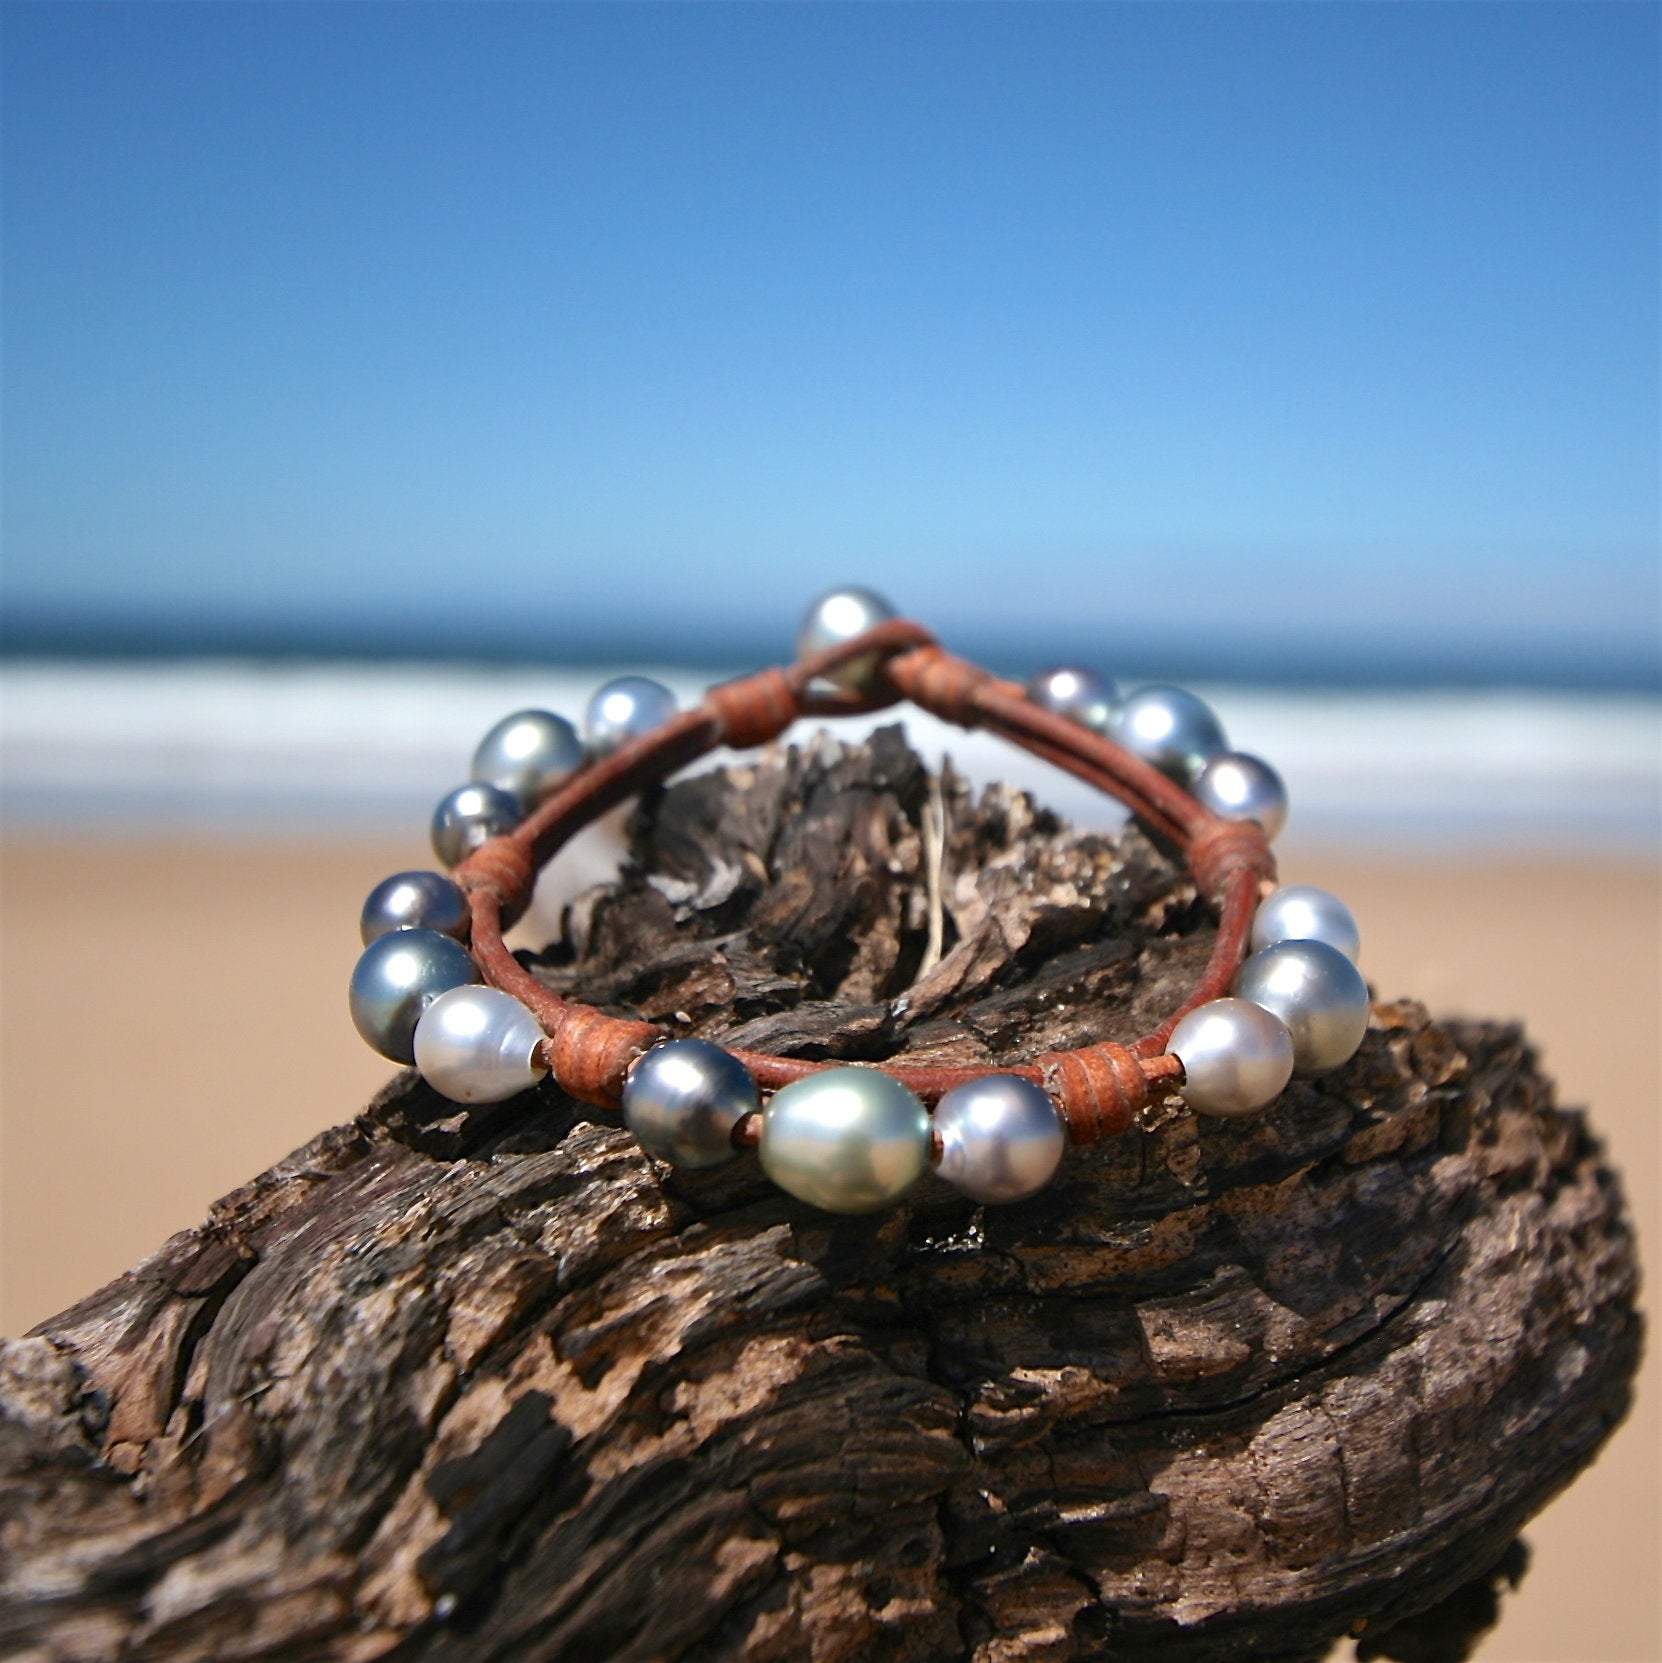 Cultured silver pearls bracelet, tahitian pearls knotted on leather, beach jewelry, boho chic, seaside mermaid st barth signature design